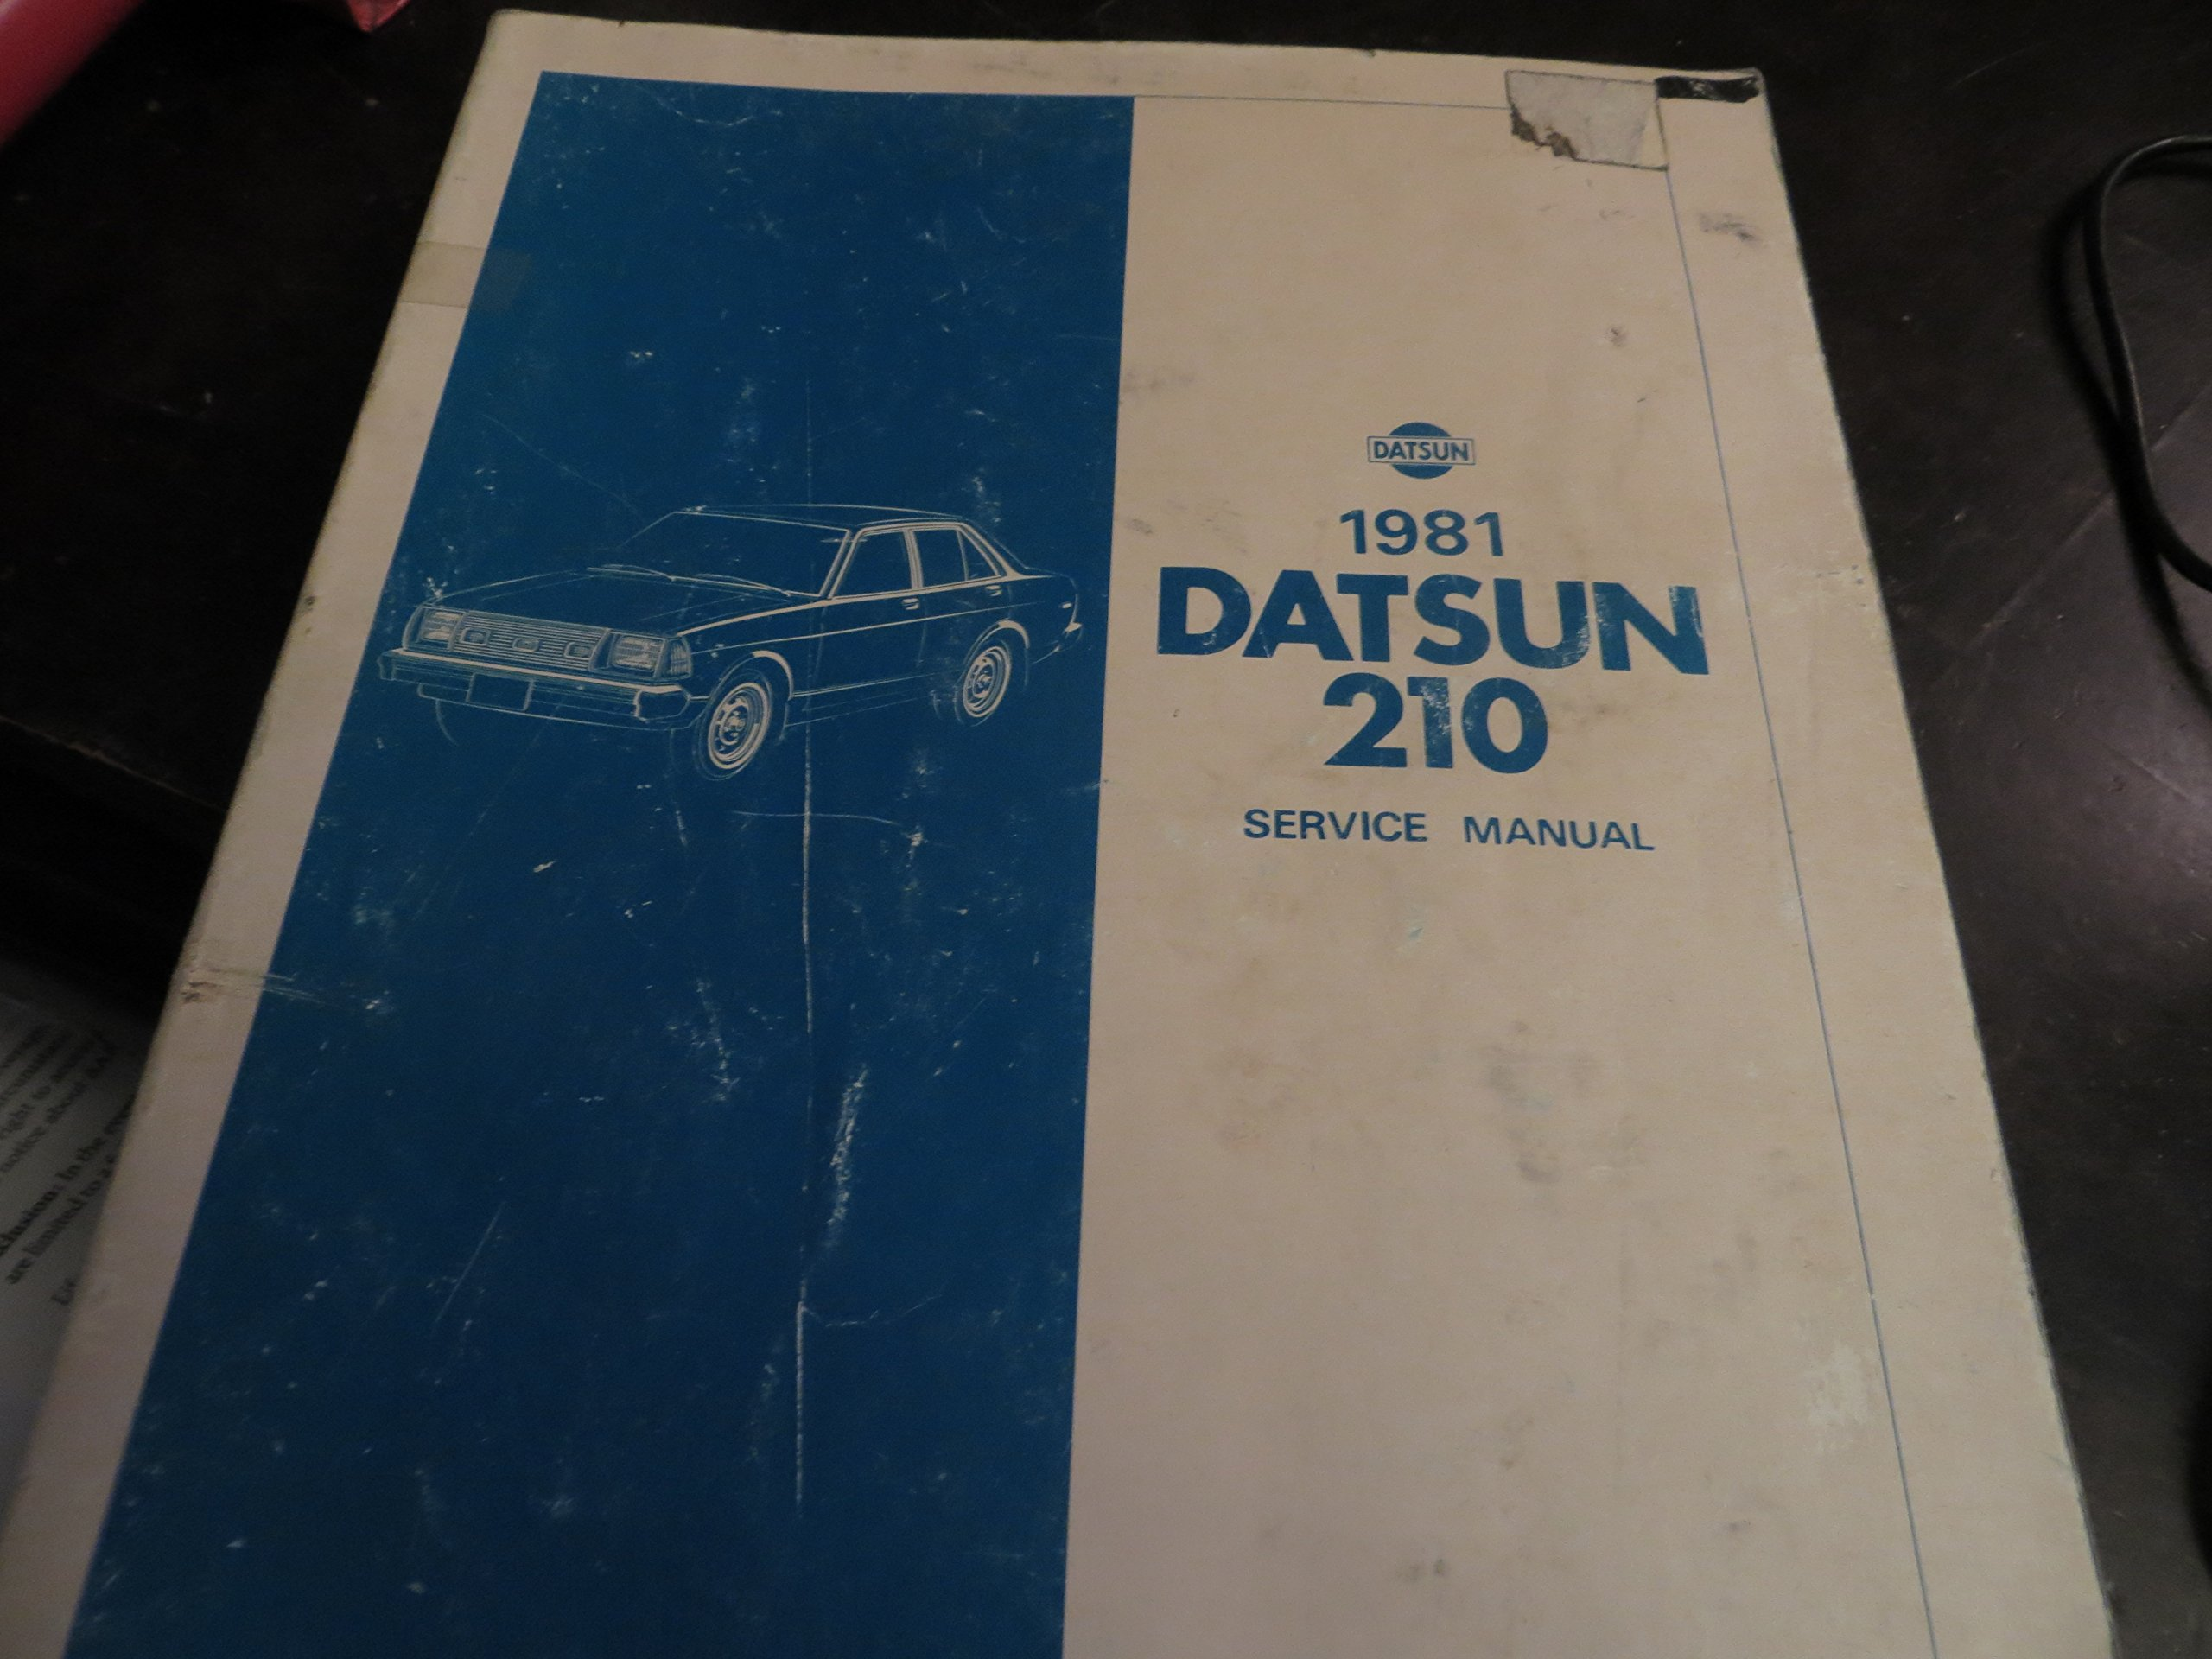 1981 Datsun 210 Service Manual - Model B310 Series: Ltd. Nissan Motor Co.:  Amazon.com: Books